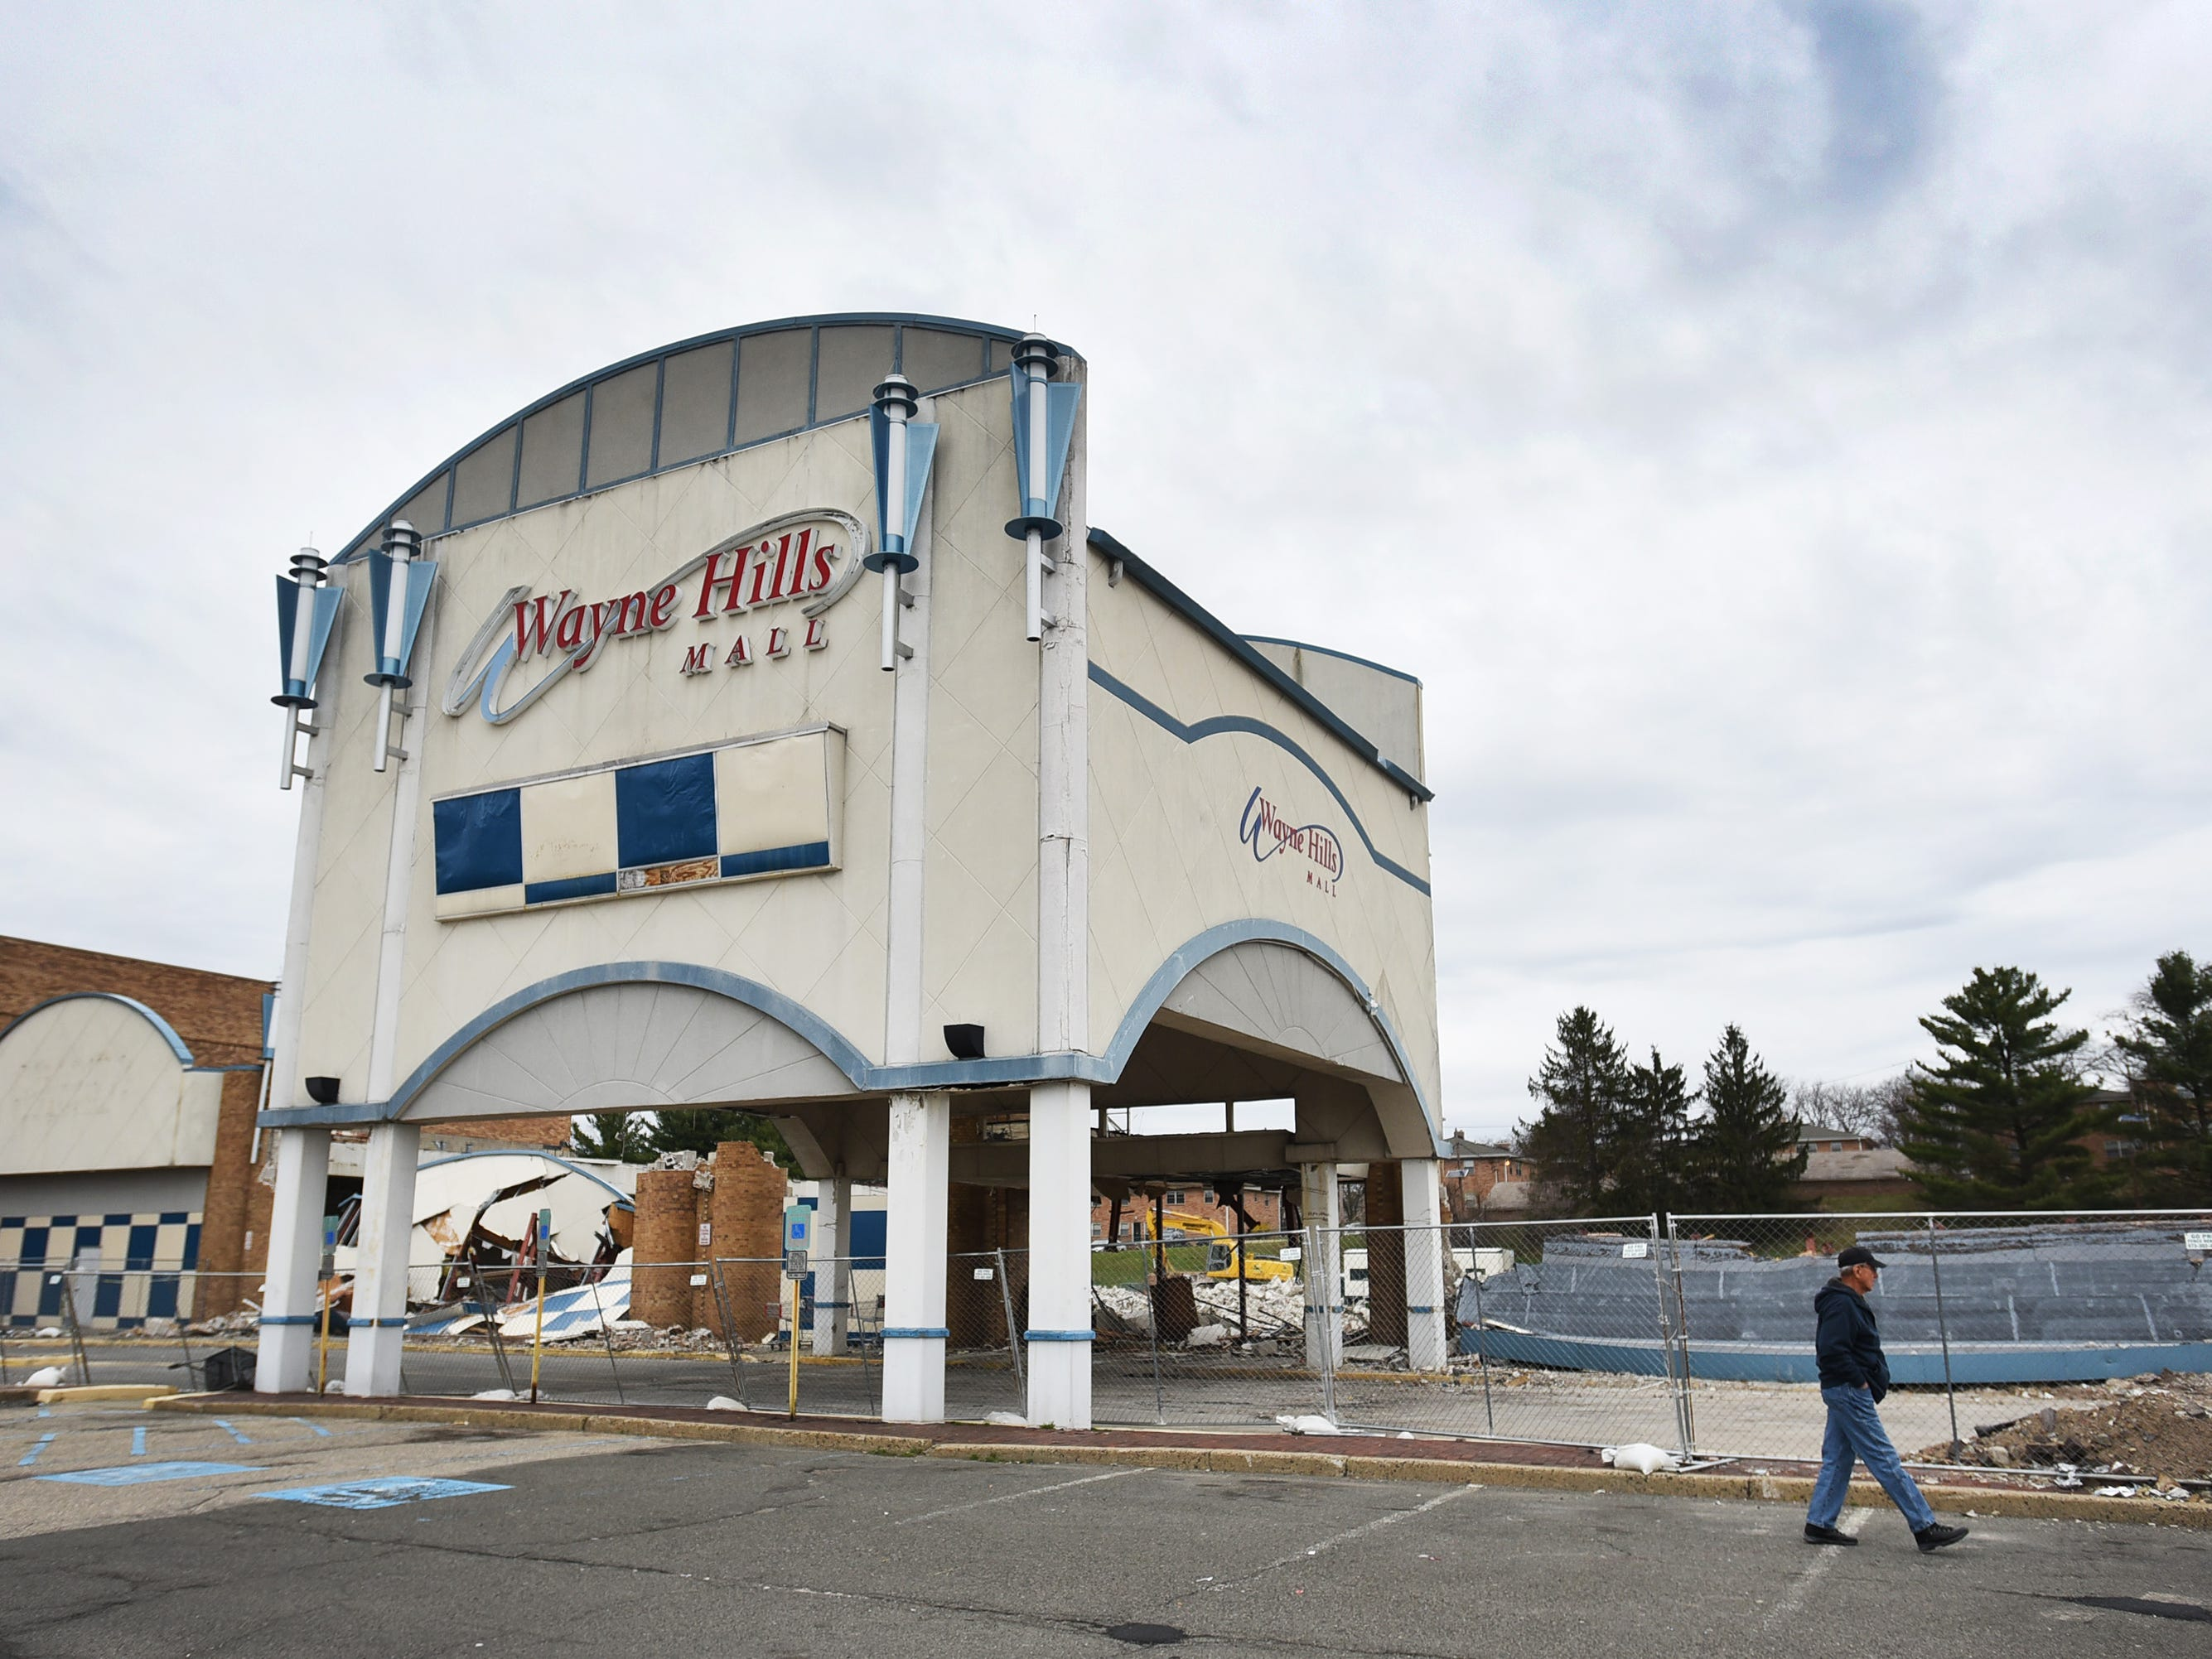 A shopper passes by as the final demolition of the Wayne Hills Mall take place, photographed in Wayne on April 11, 2019.